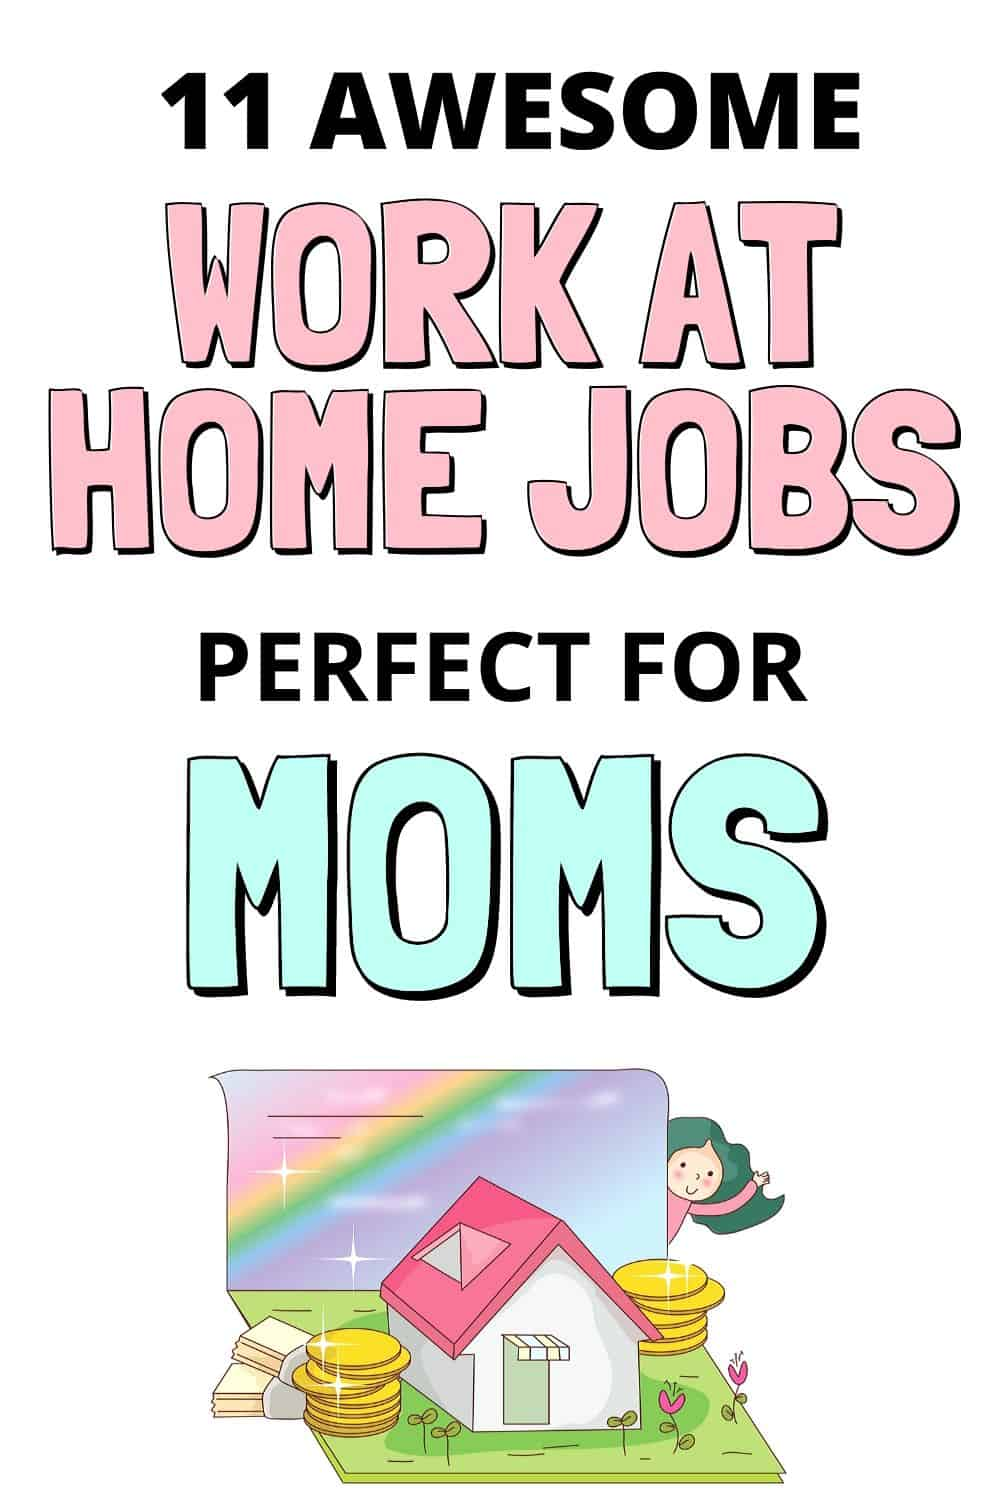 11 awesome work at home jobs perfect for mums